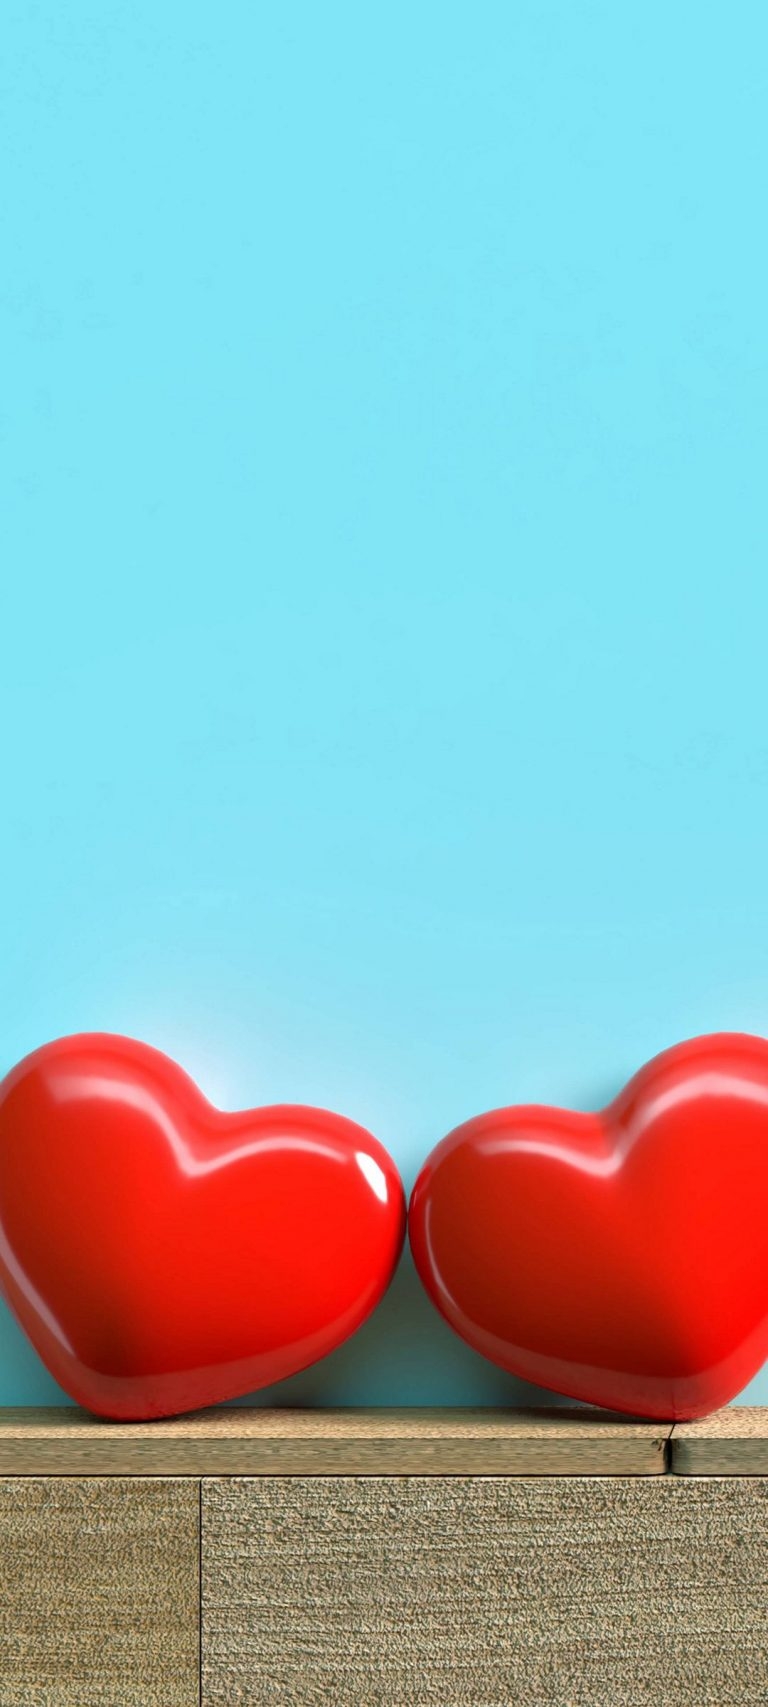 Red Hearts Love 1080x2400 768x1707